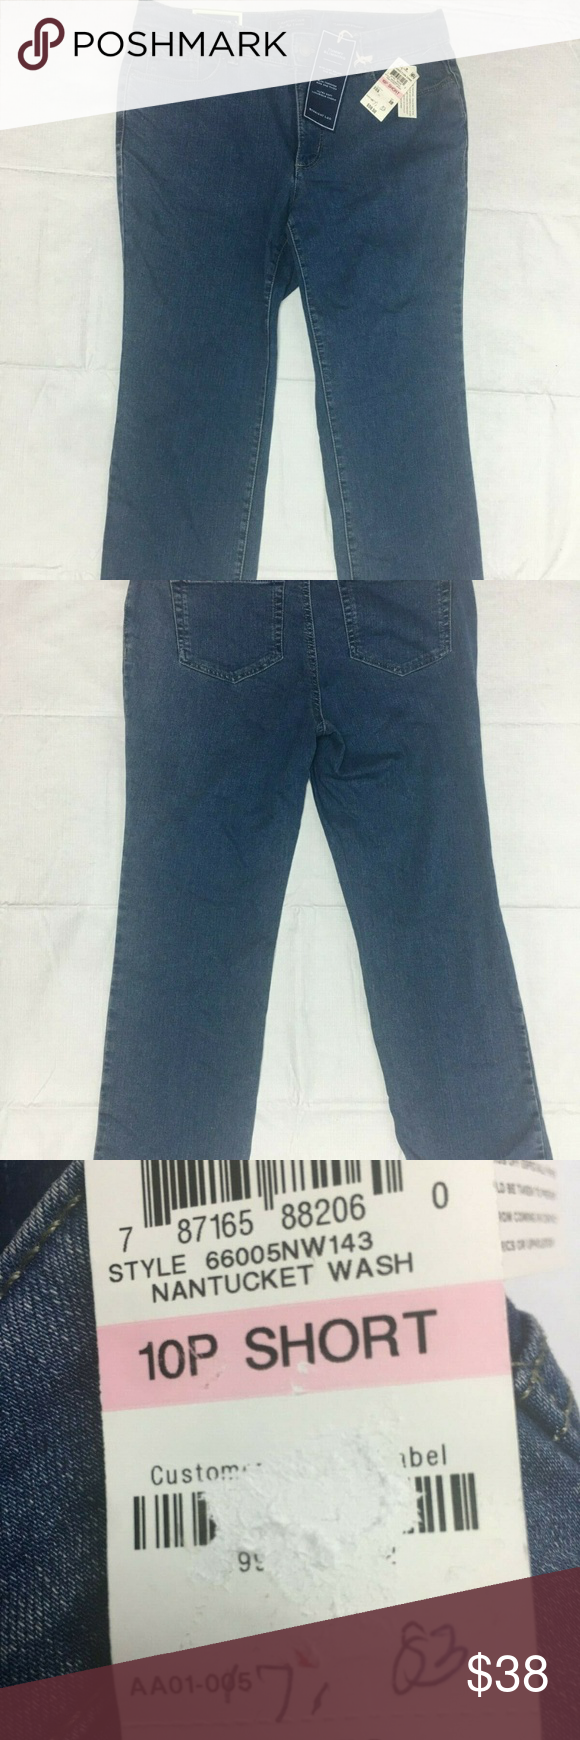 Charter Club Straight Leg Jeans Womens 10 PS Lexin Charter Club Straight Leg Jeans Womens 10 PS Lexington Cotton Elastine NEW  Straight fit through hips and thighs Straight leg is slightly tapered Shank and zipper fly closure belt loops Classic 5-pocket styling Designed to fit and flatter 5'4